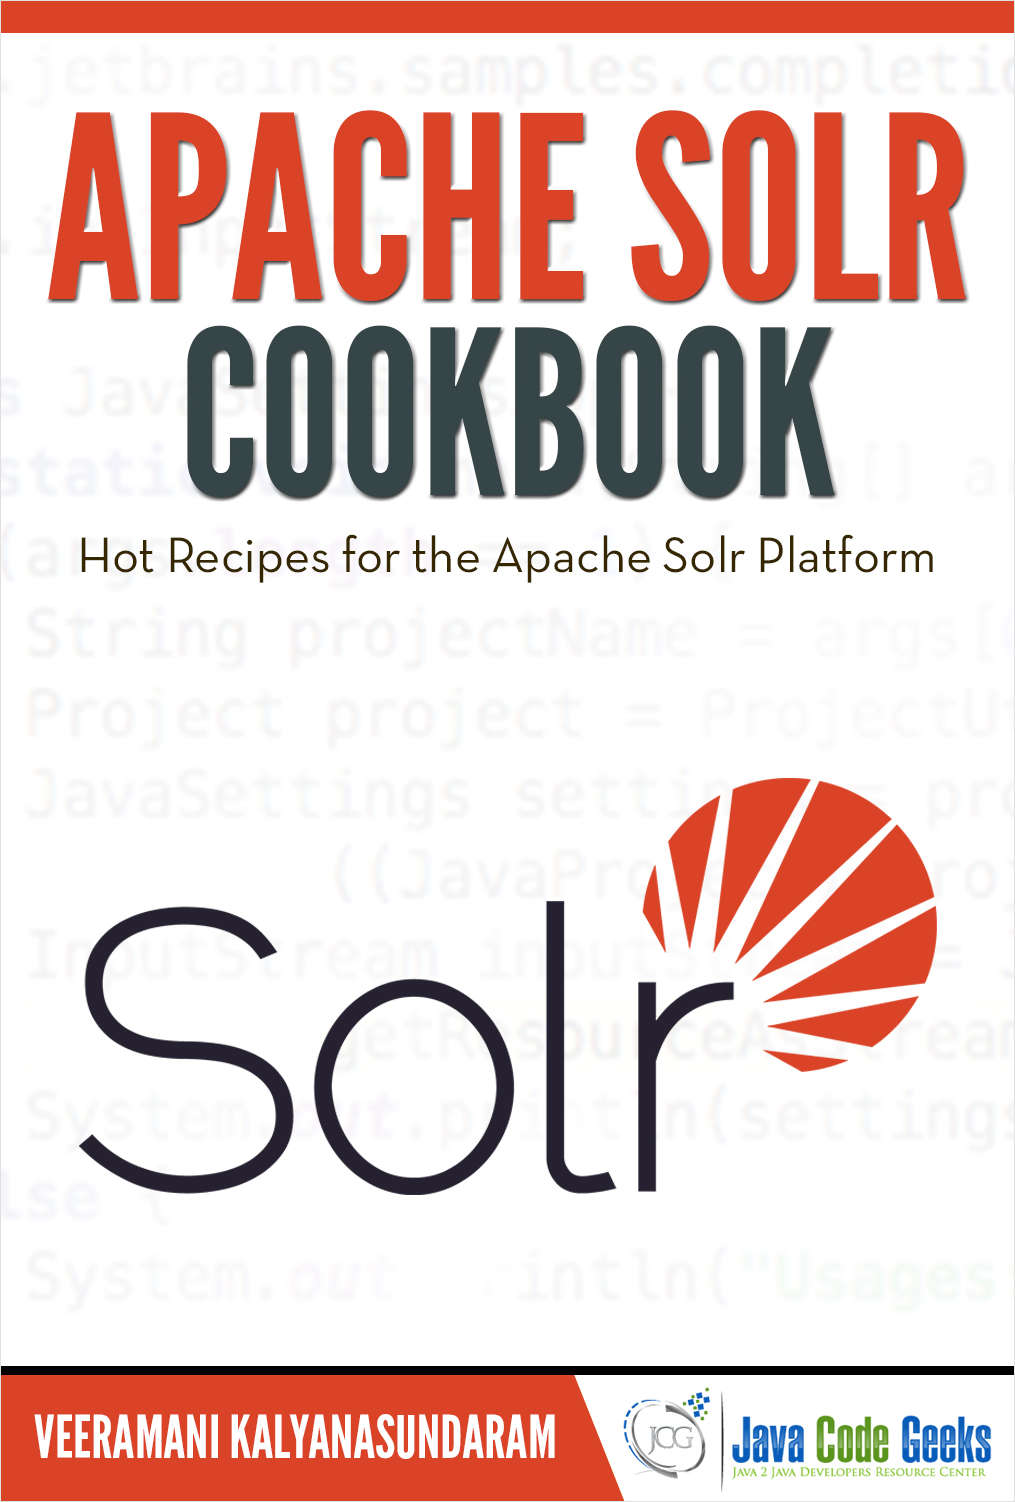 Apache Solr Cookbook